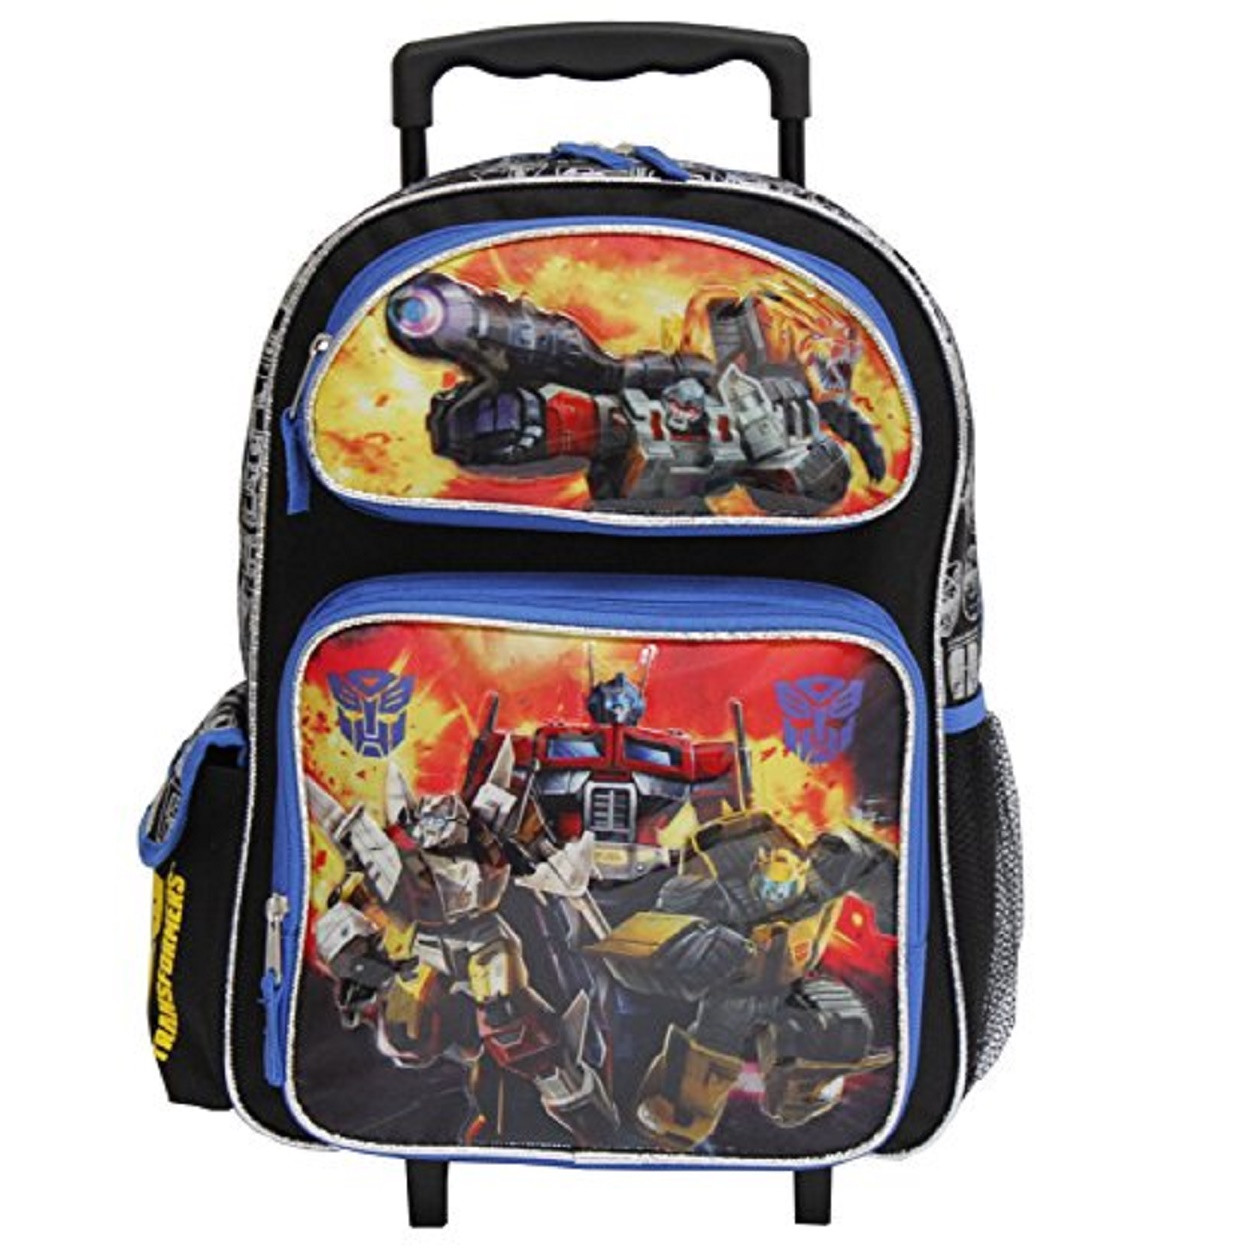 Transformers inch large rolling backpack optimus jpg 1250x1250 Transformers  rolling luggage 15c4f0ed942e6